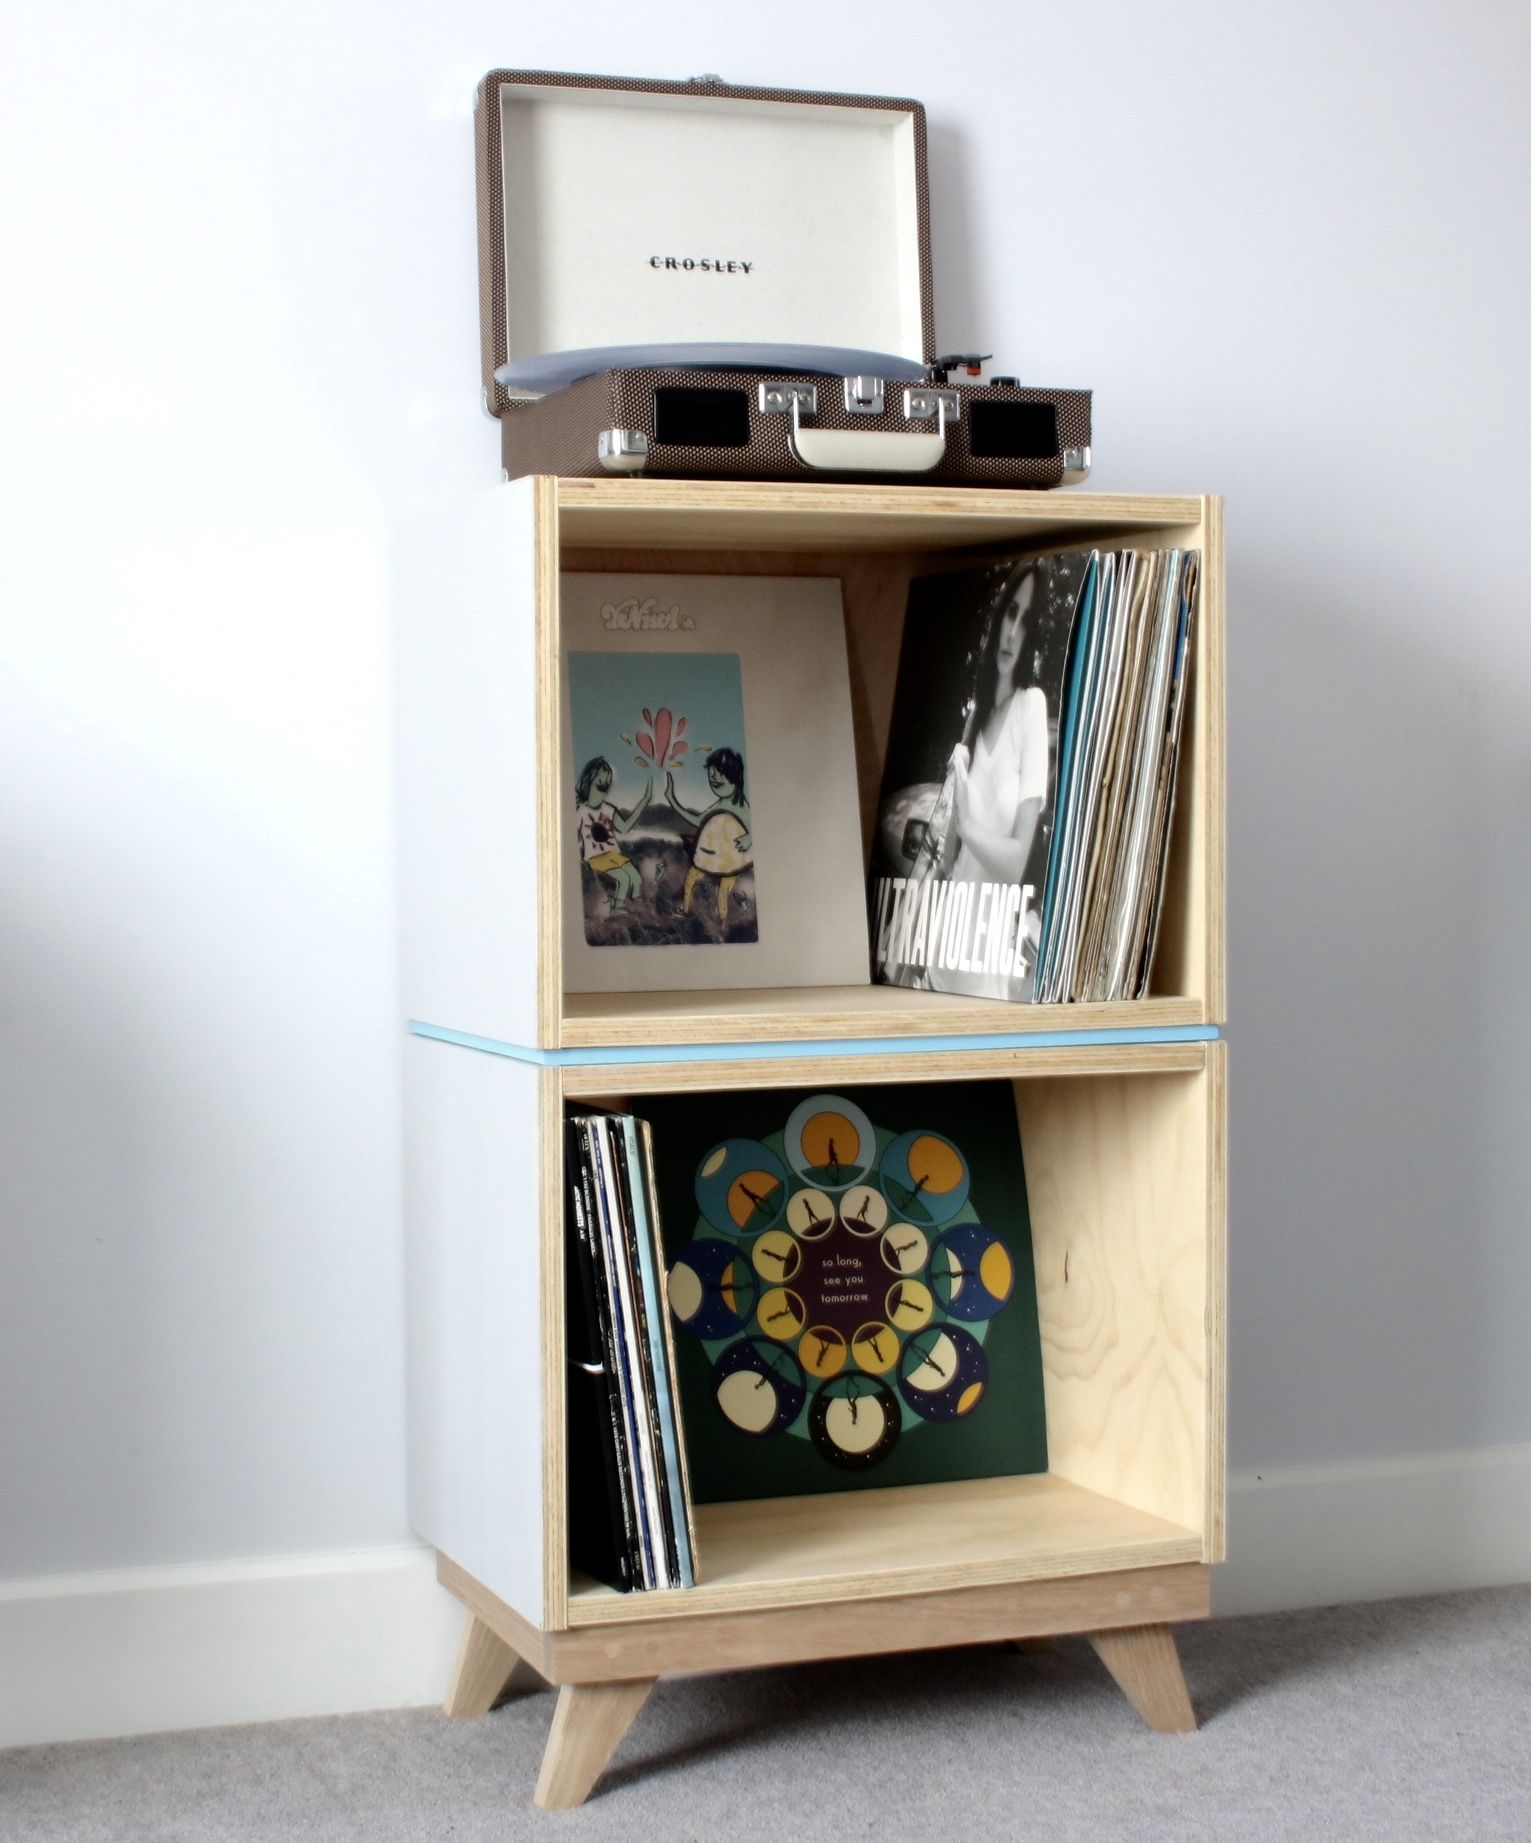 Retro style plywood record cabinet shelving Made by Jane Handford